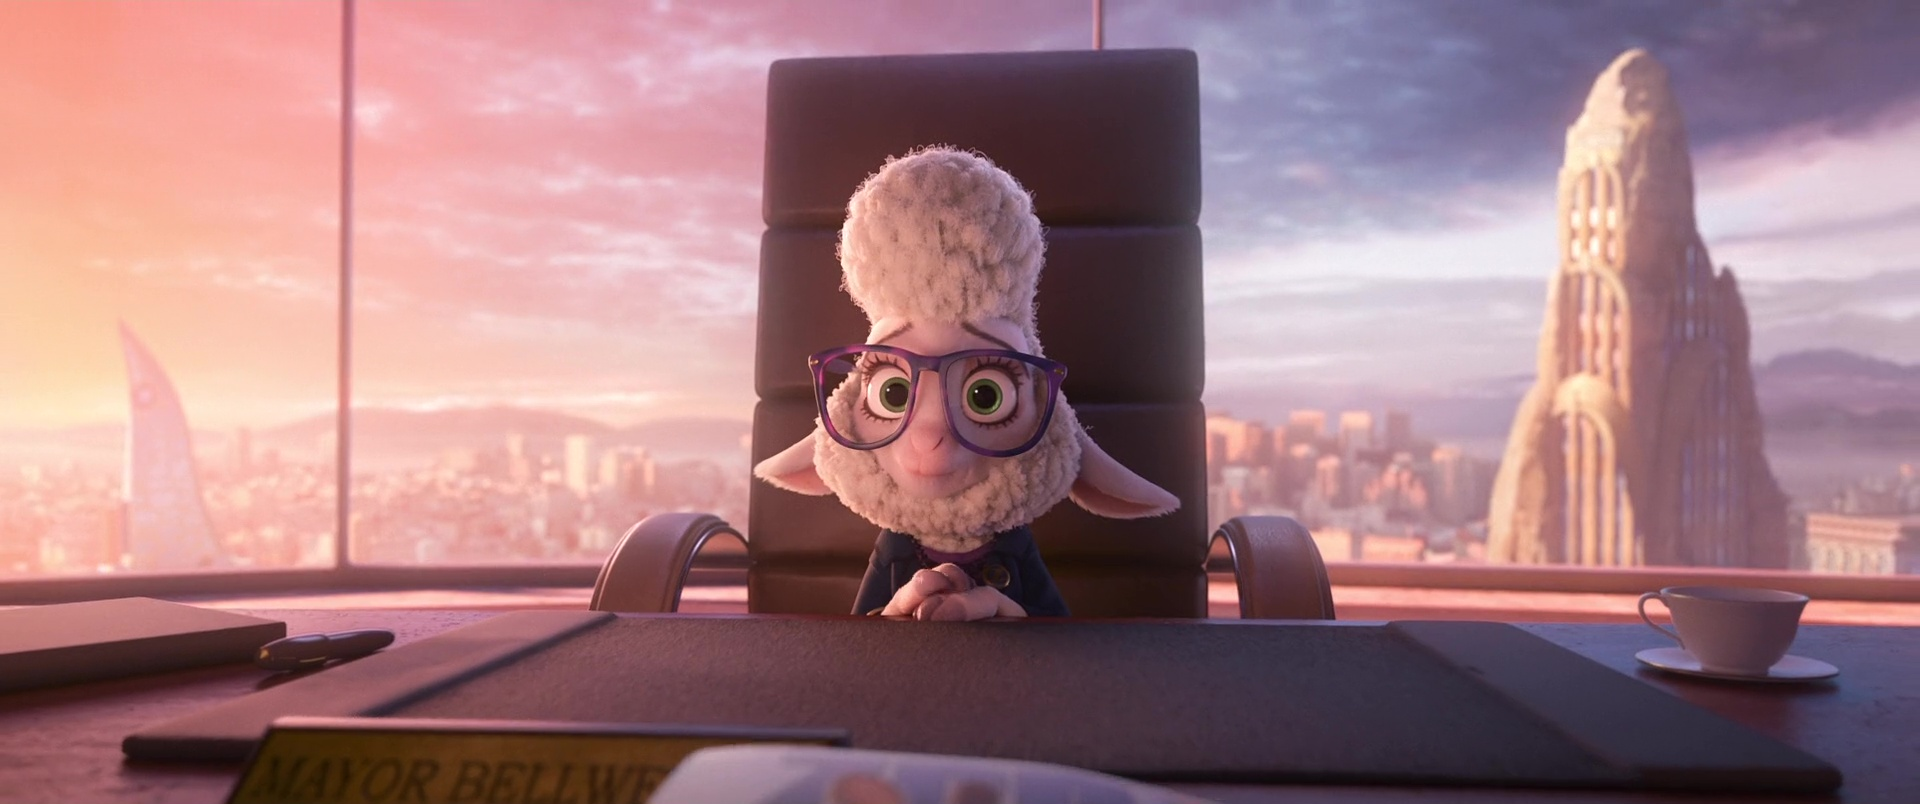 maire mayor bellwether disney personnage character zootopie zootopia